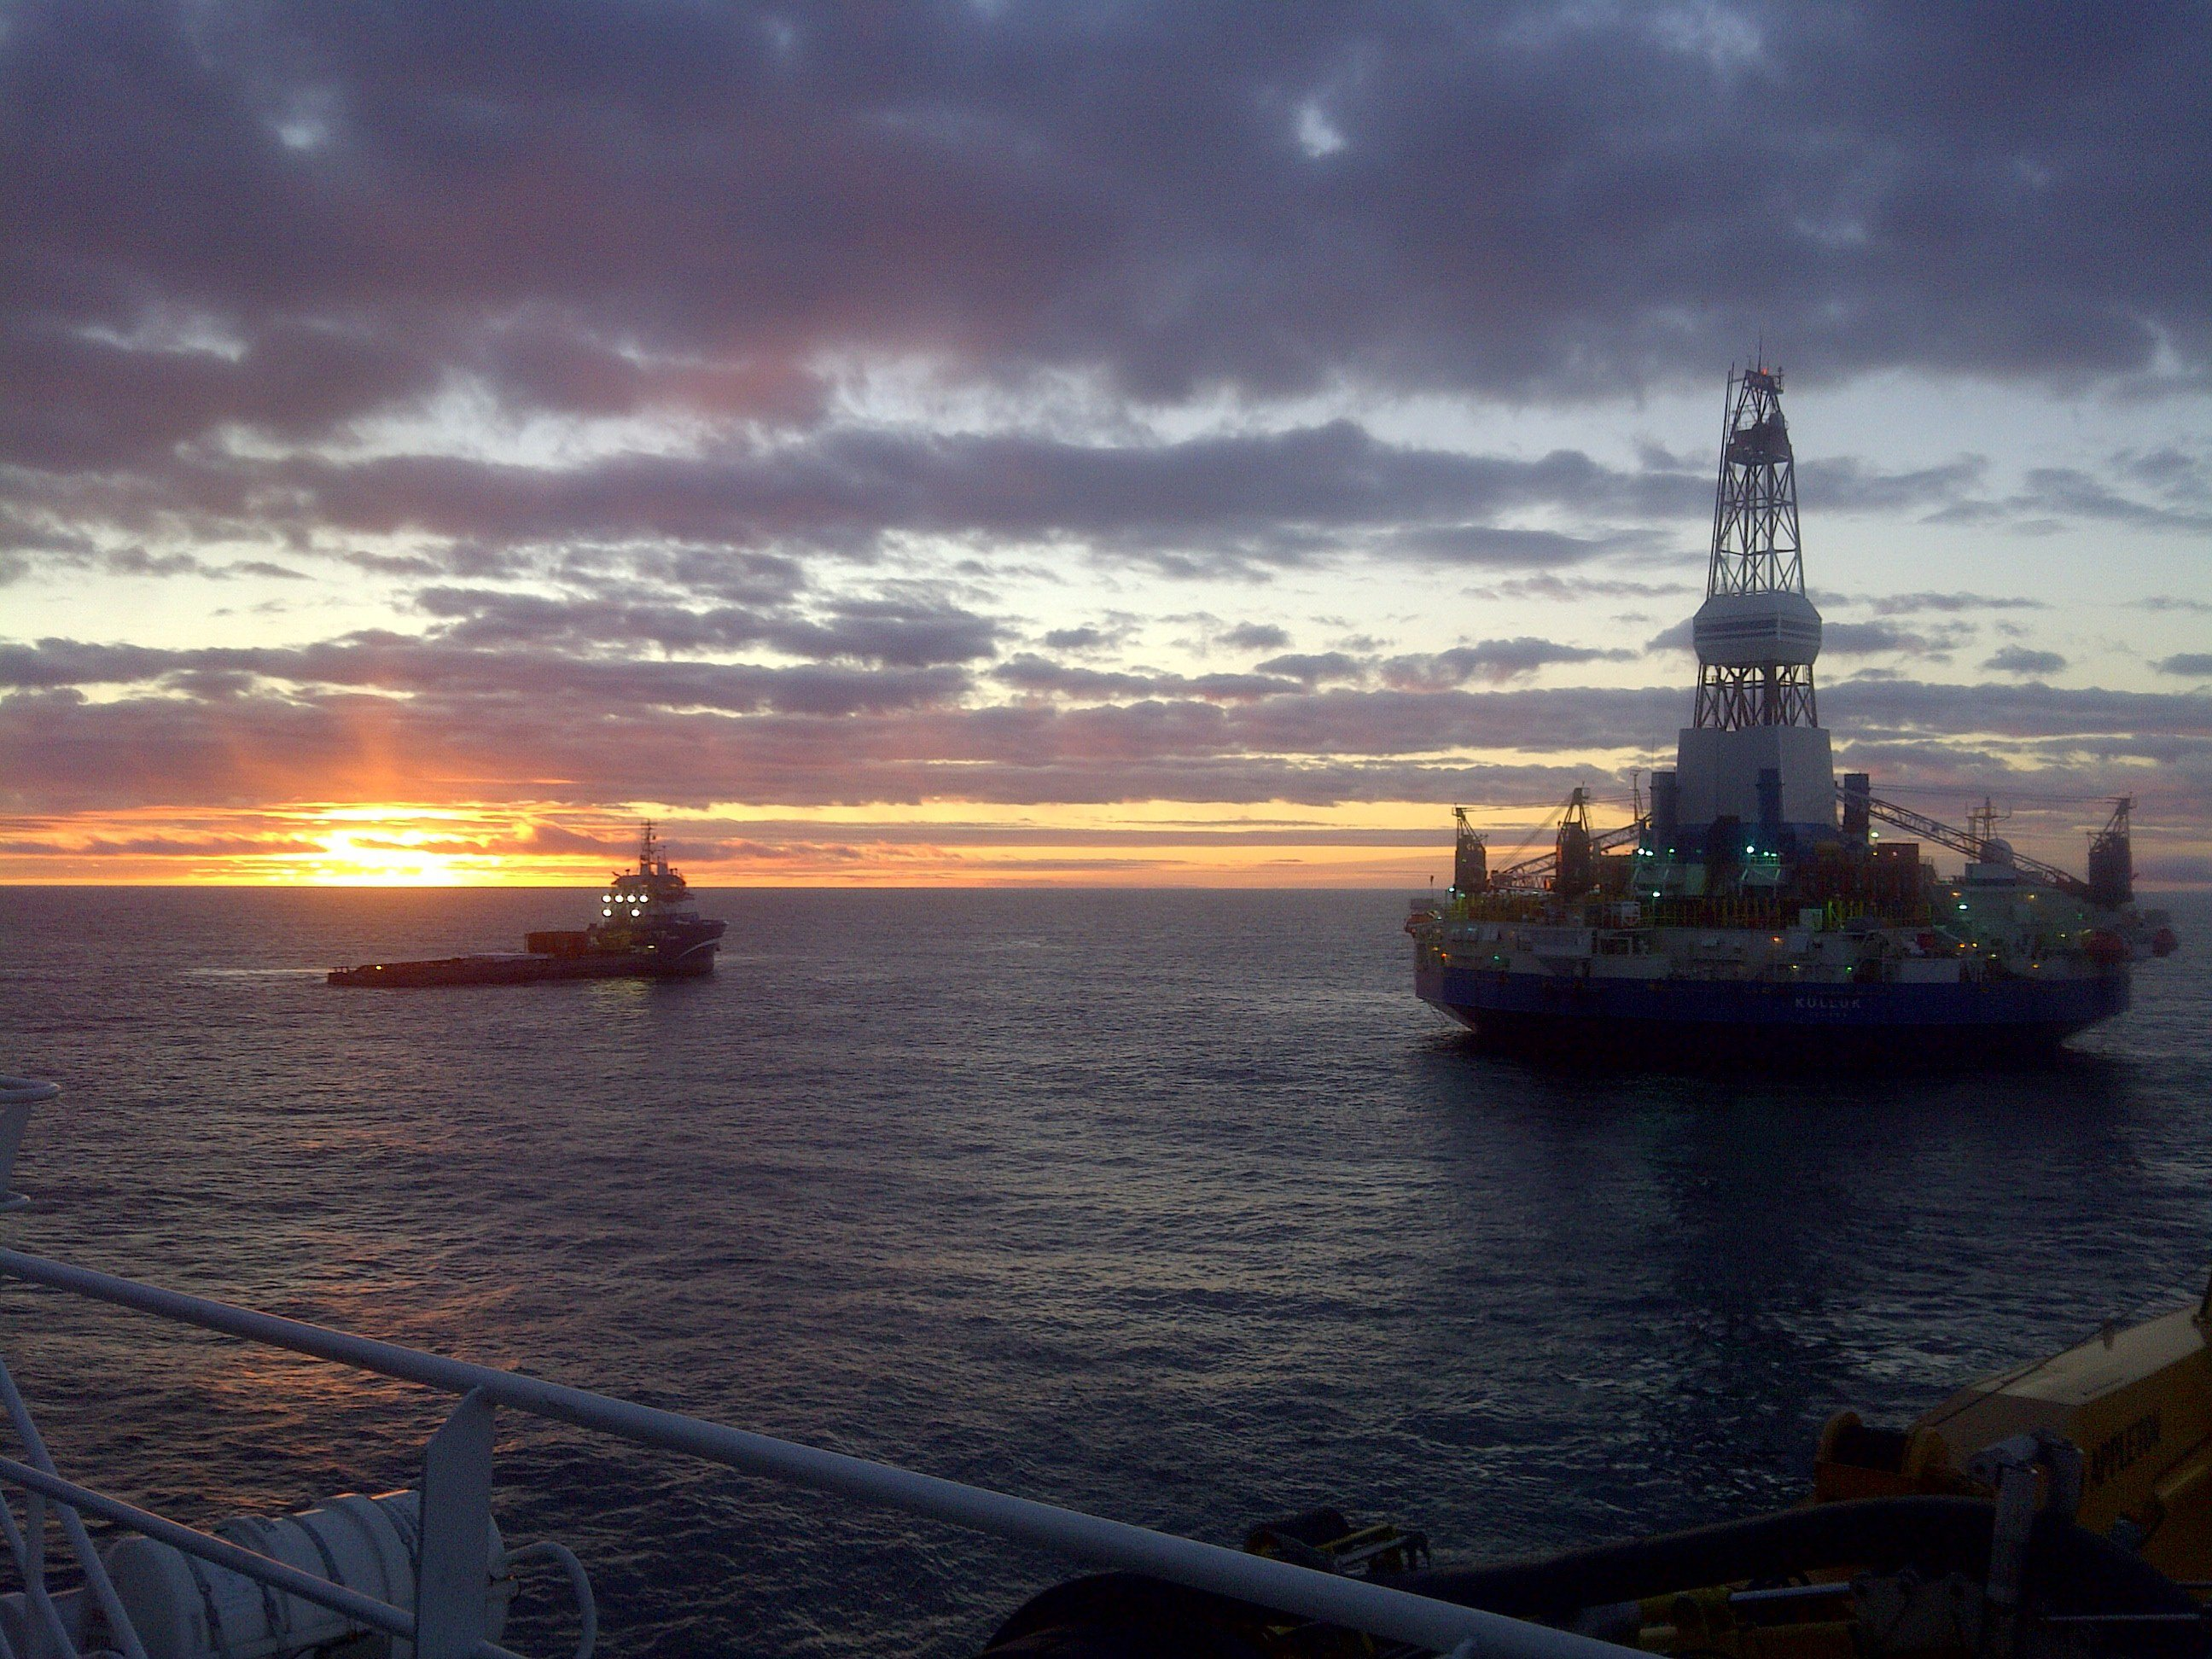 Beaufort Sea oil leasing plan moves ahead, despite legal challenge